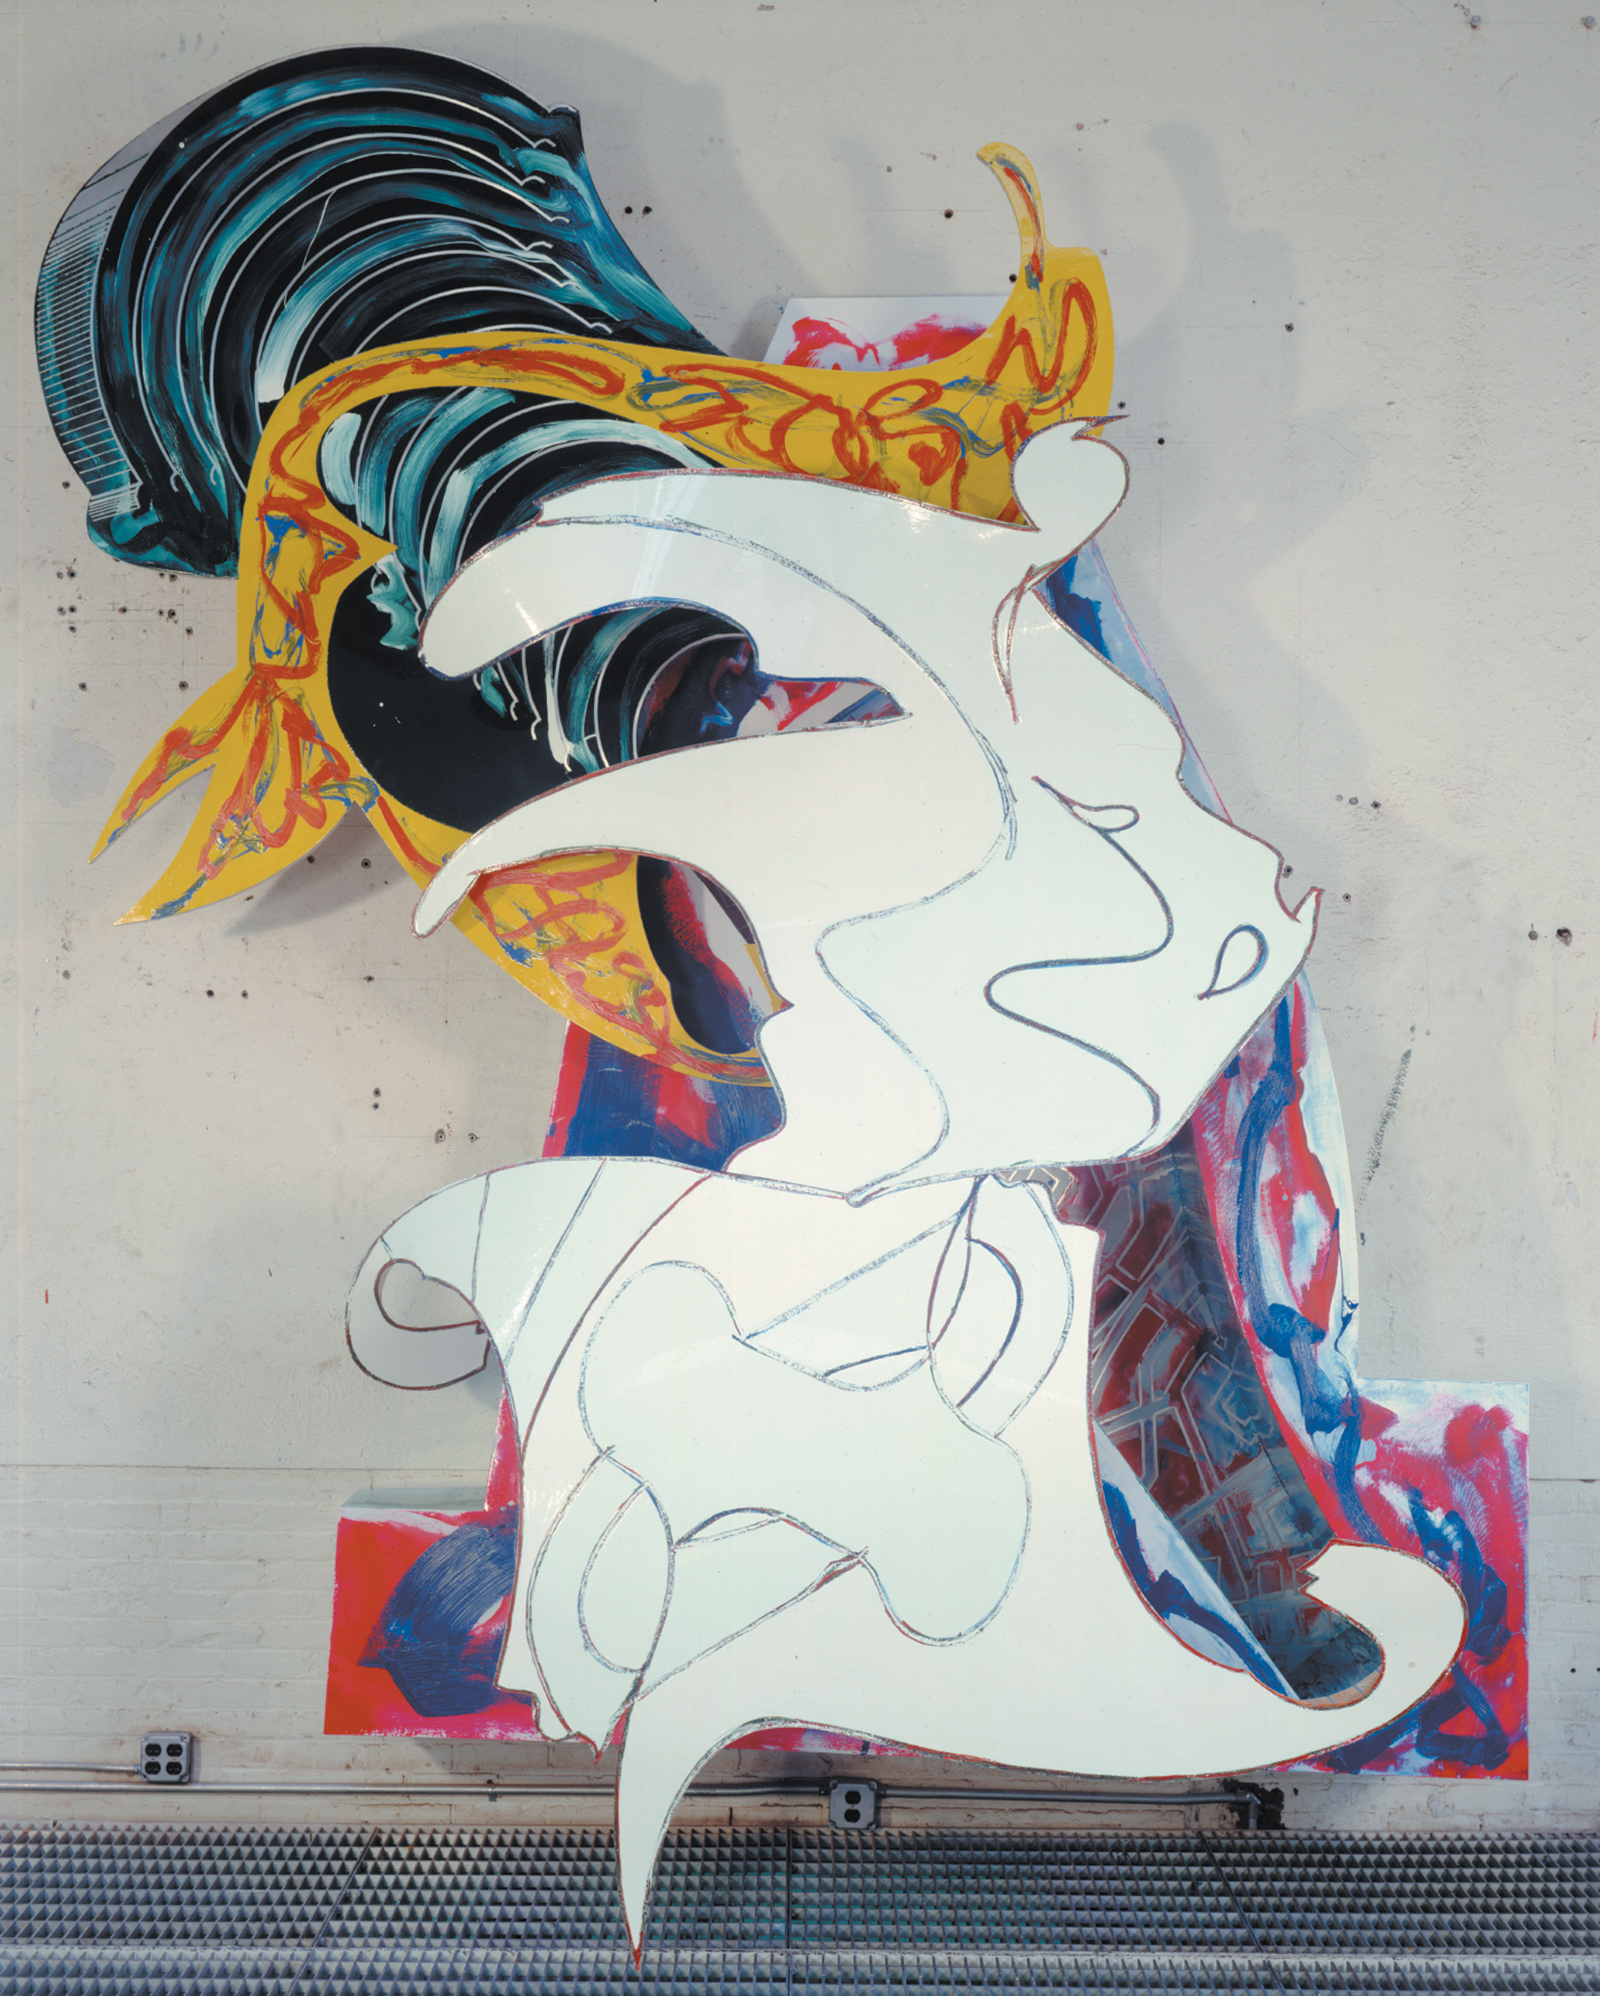 Frank Stella: The Whiteness of the Whale (IRS-1, 2X), paint on aluminum, 149 x 121 3/4 x 45 1/4 inches, 1987